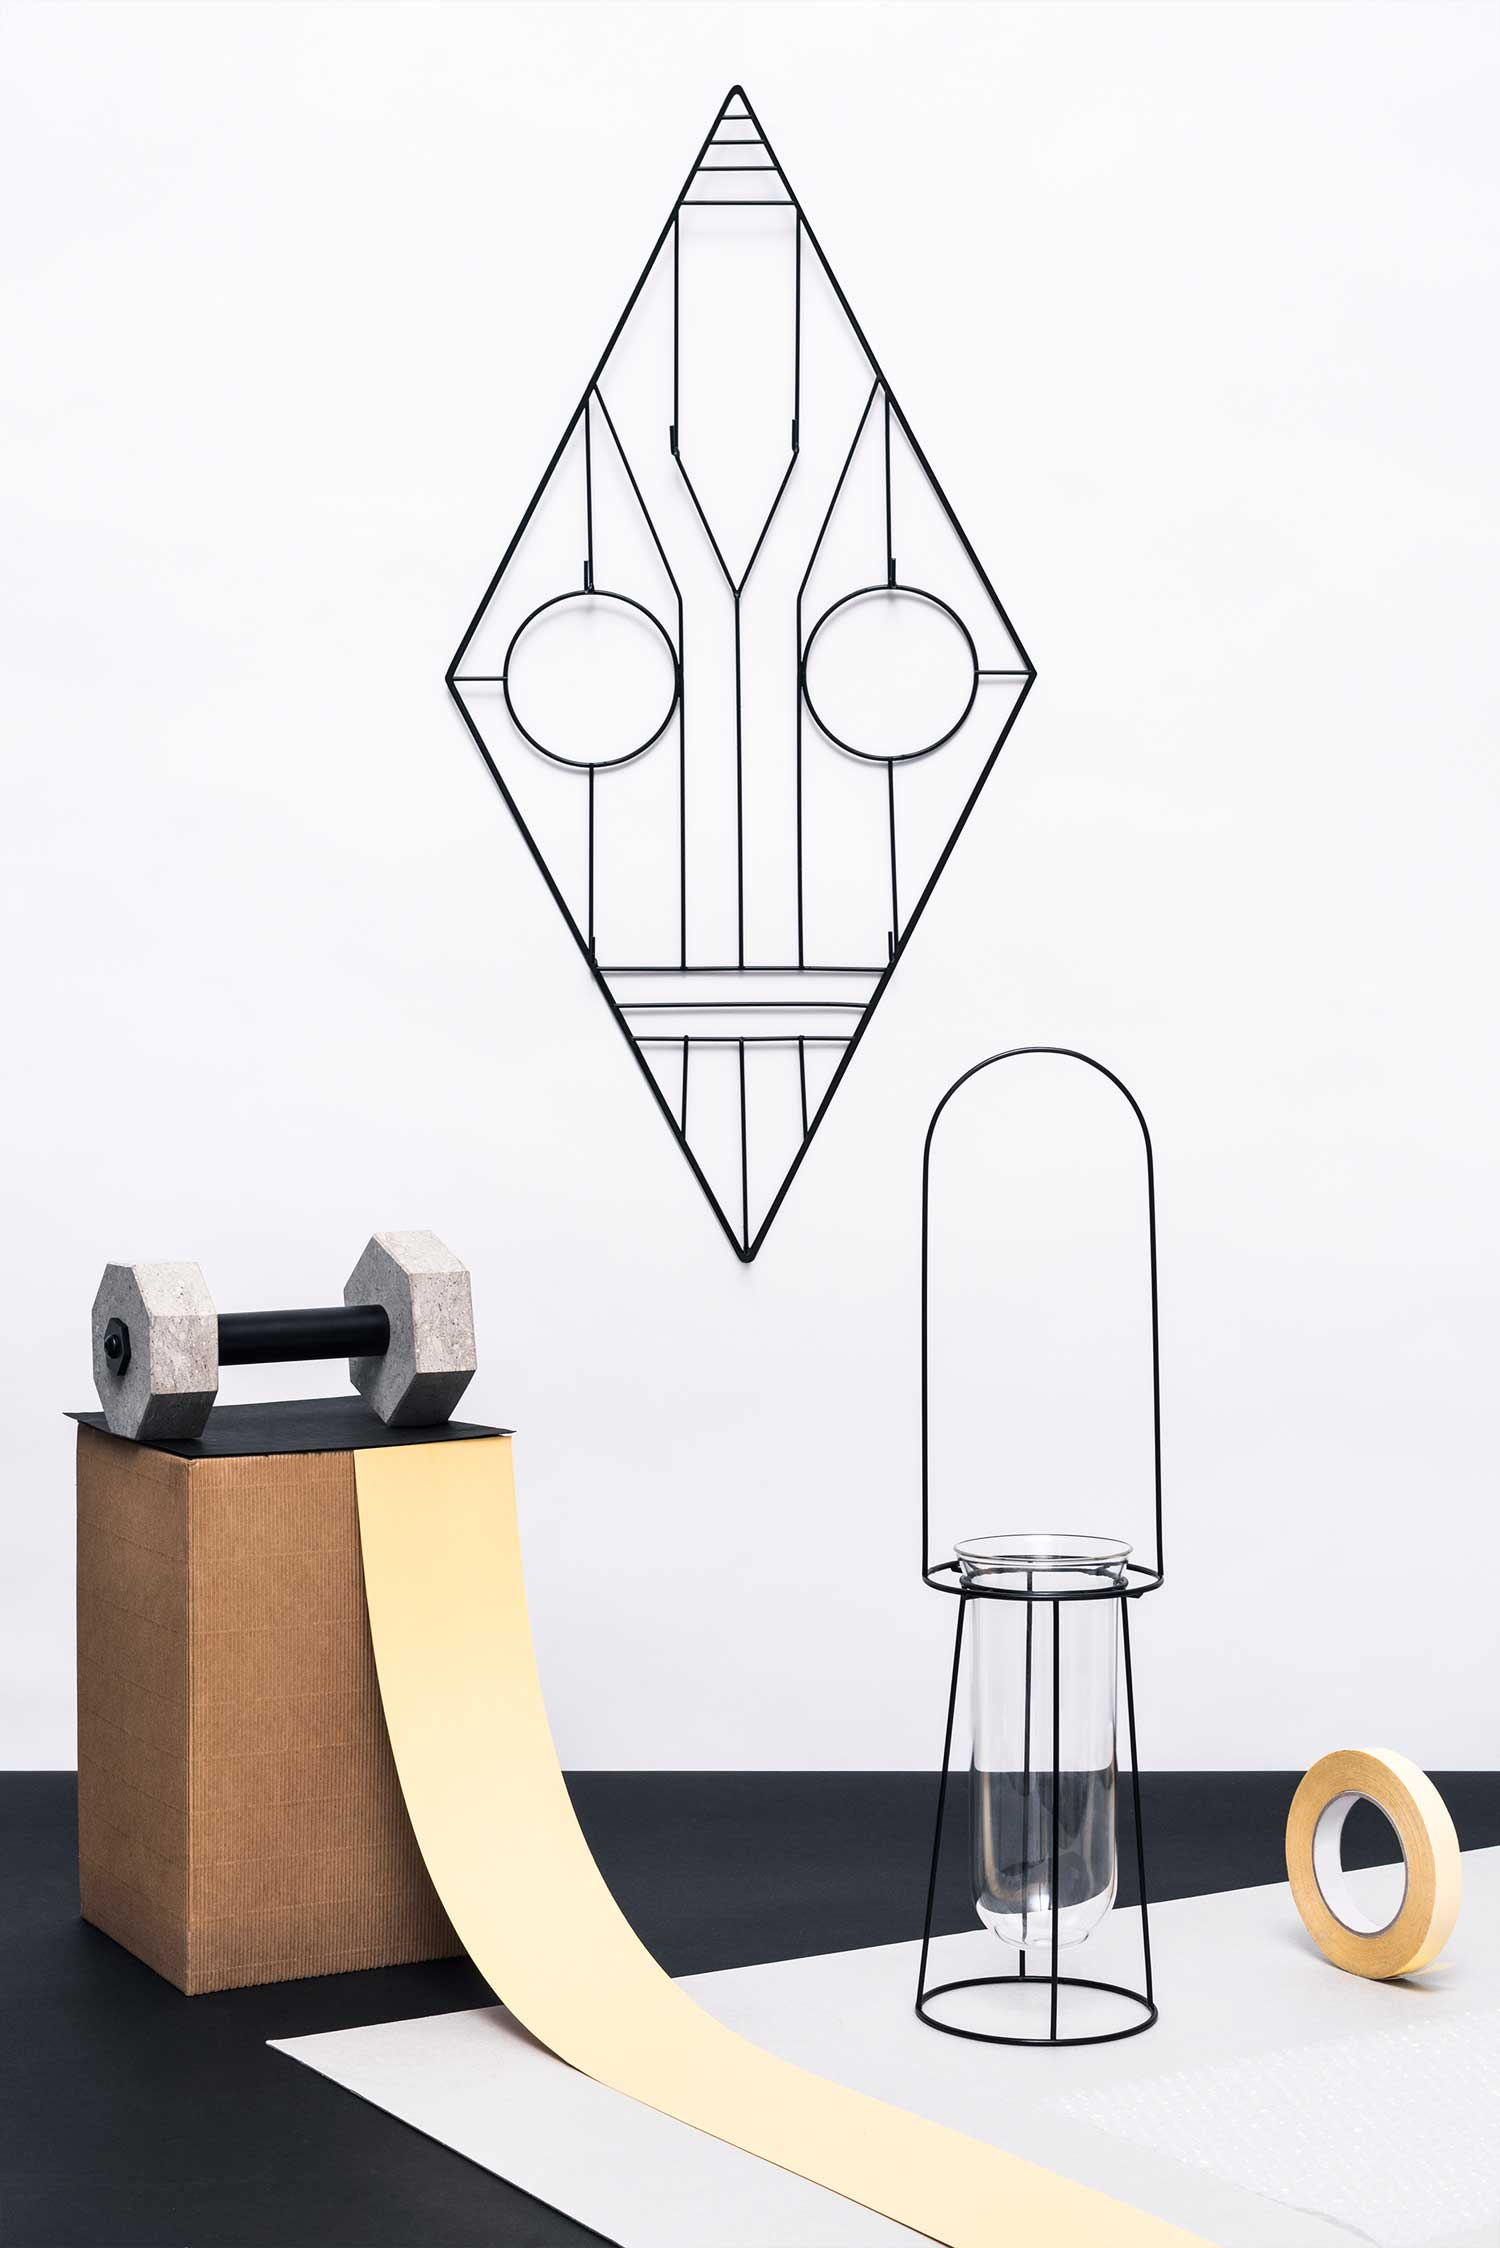 Fabrica Launches Extra-Ordinary Gallery with Exquisite Handmade Design Objects.